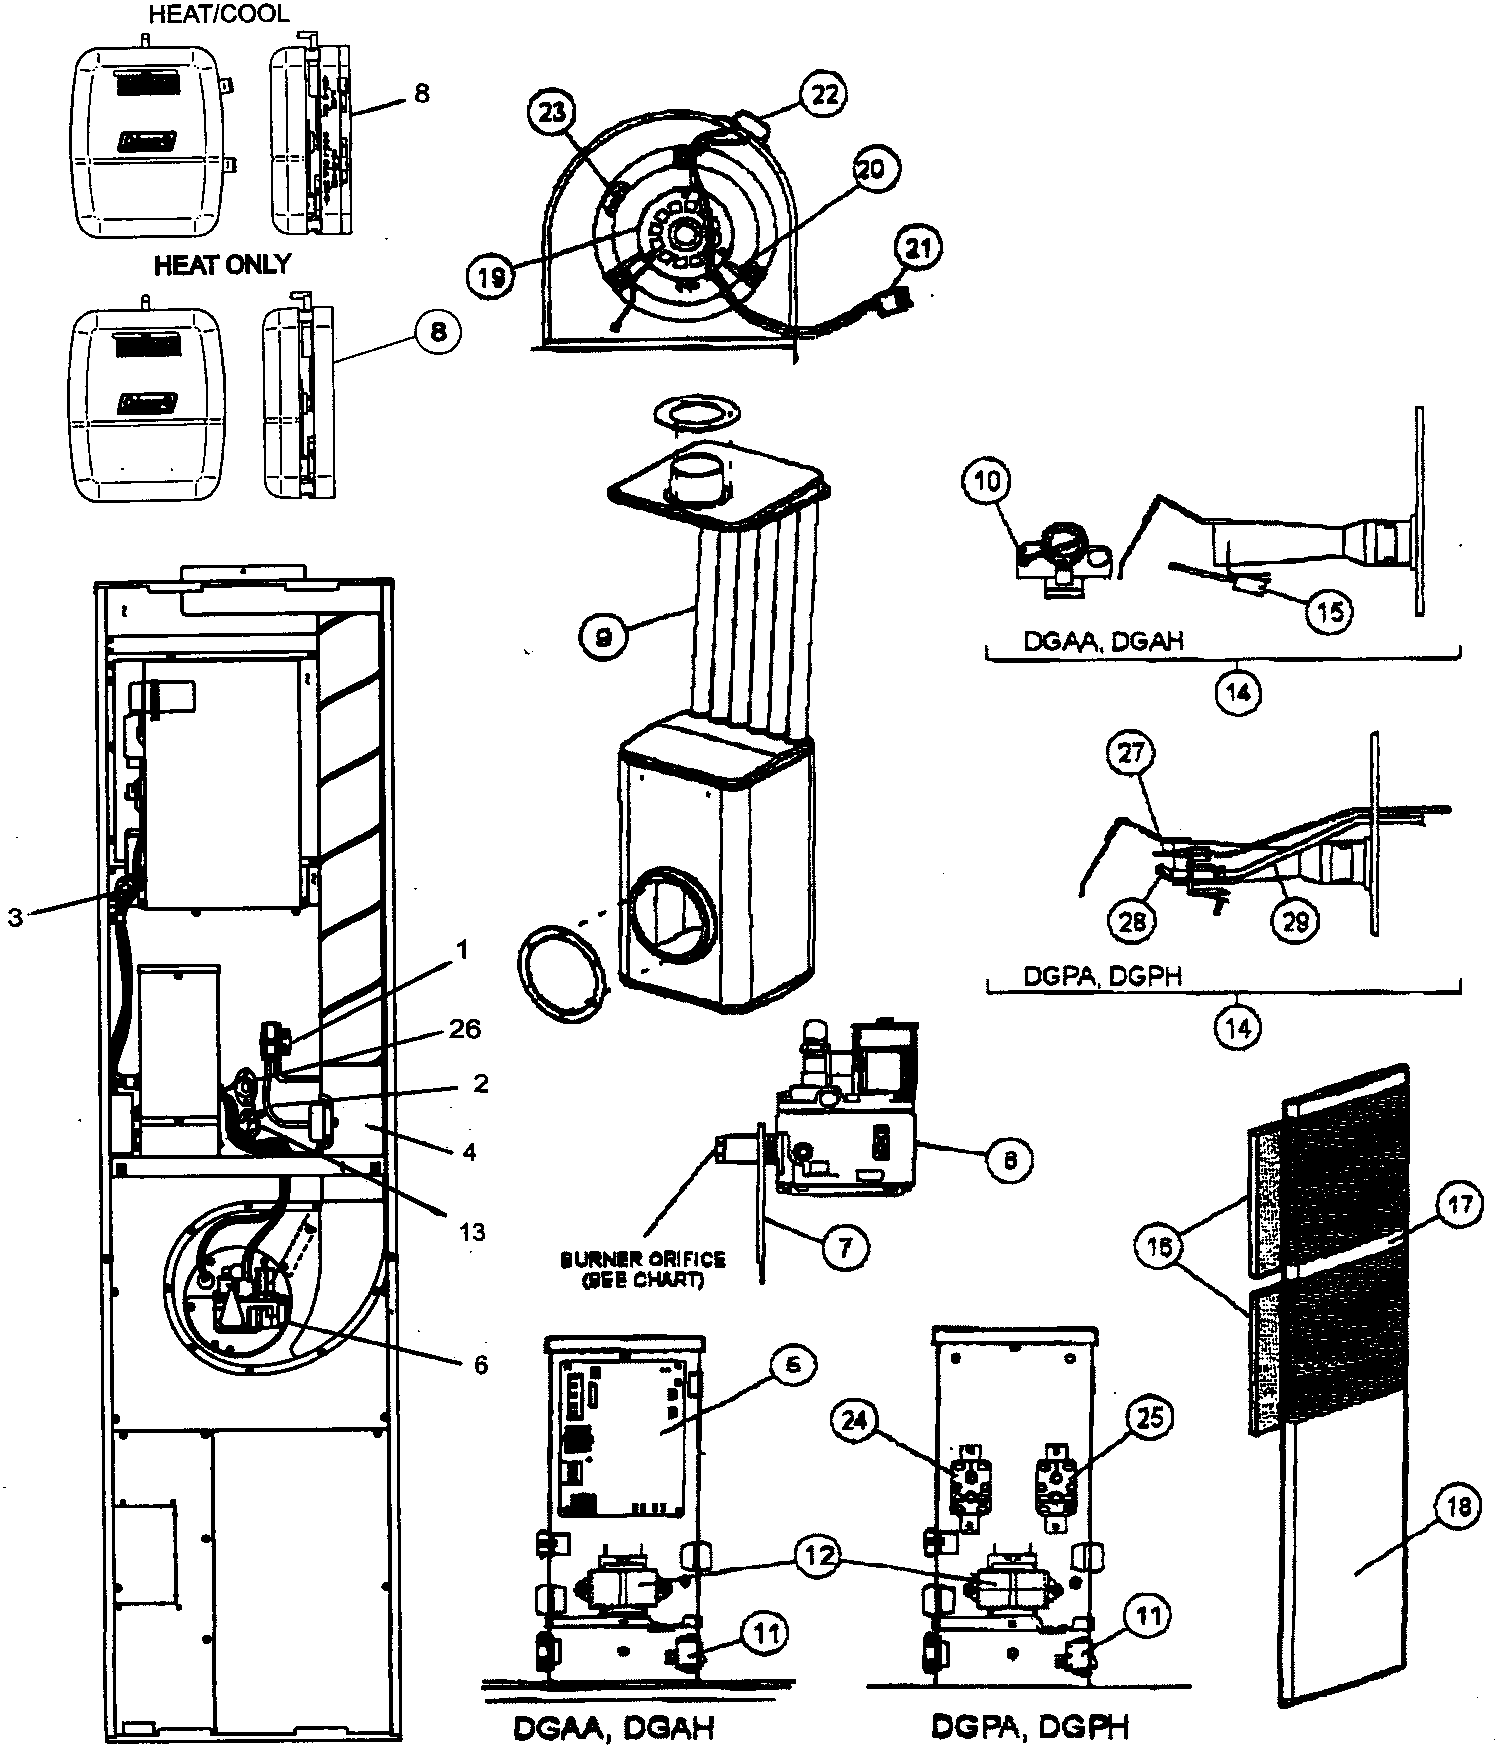 hight resolution of coleman model dgaa090bdta furnace heater gas genuine parts coleman mobile home furnace schematics coleman furnace diagram